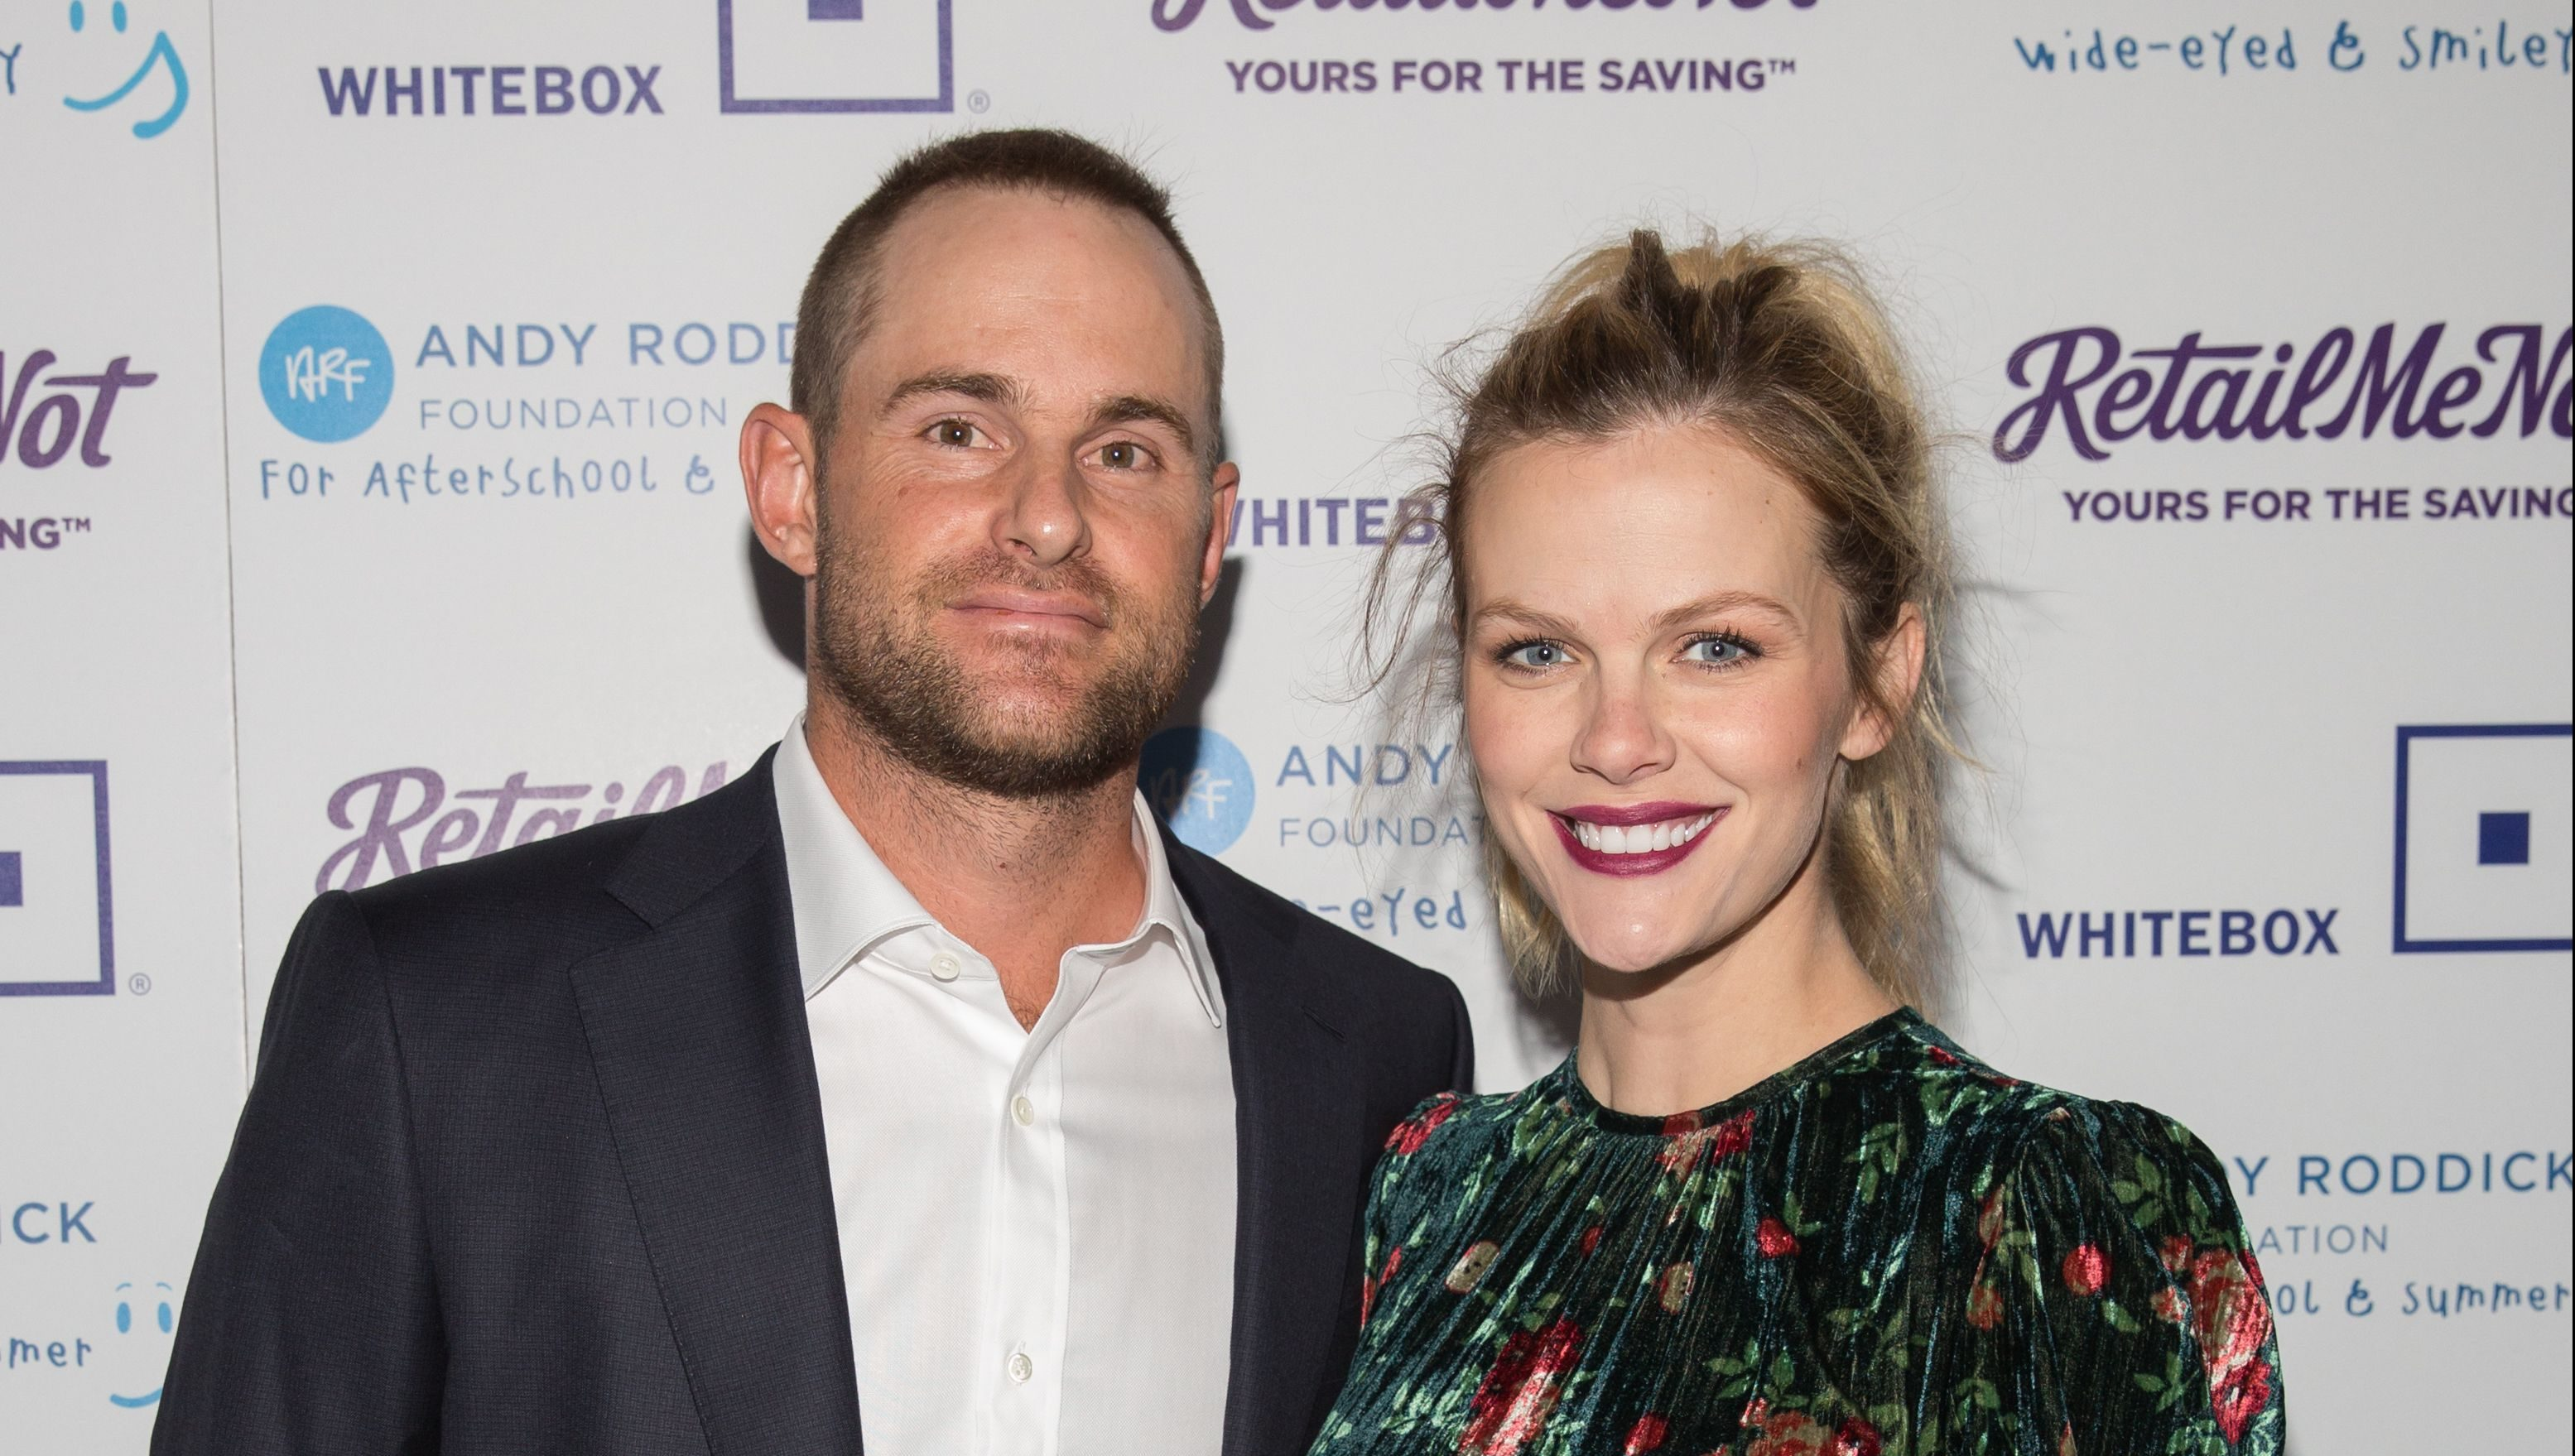 Andy Roddick And Brooklyn Decker Have Talked About A 3rd Child